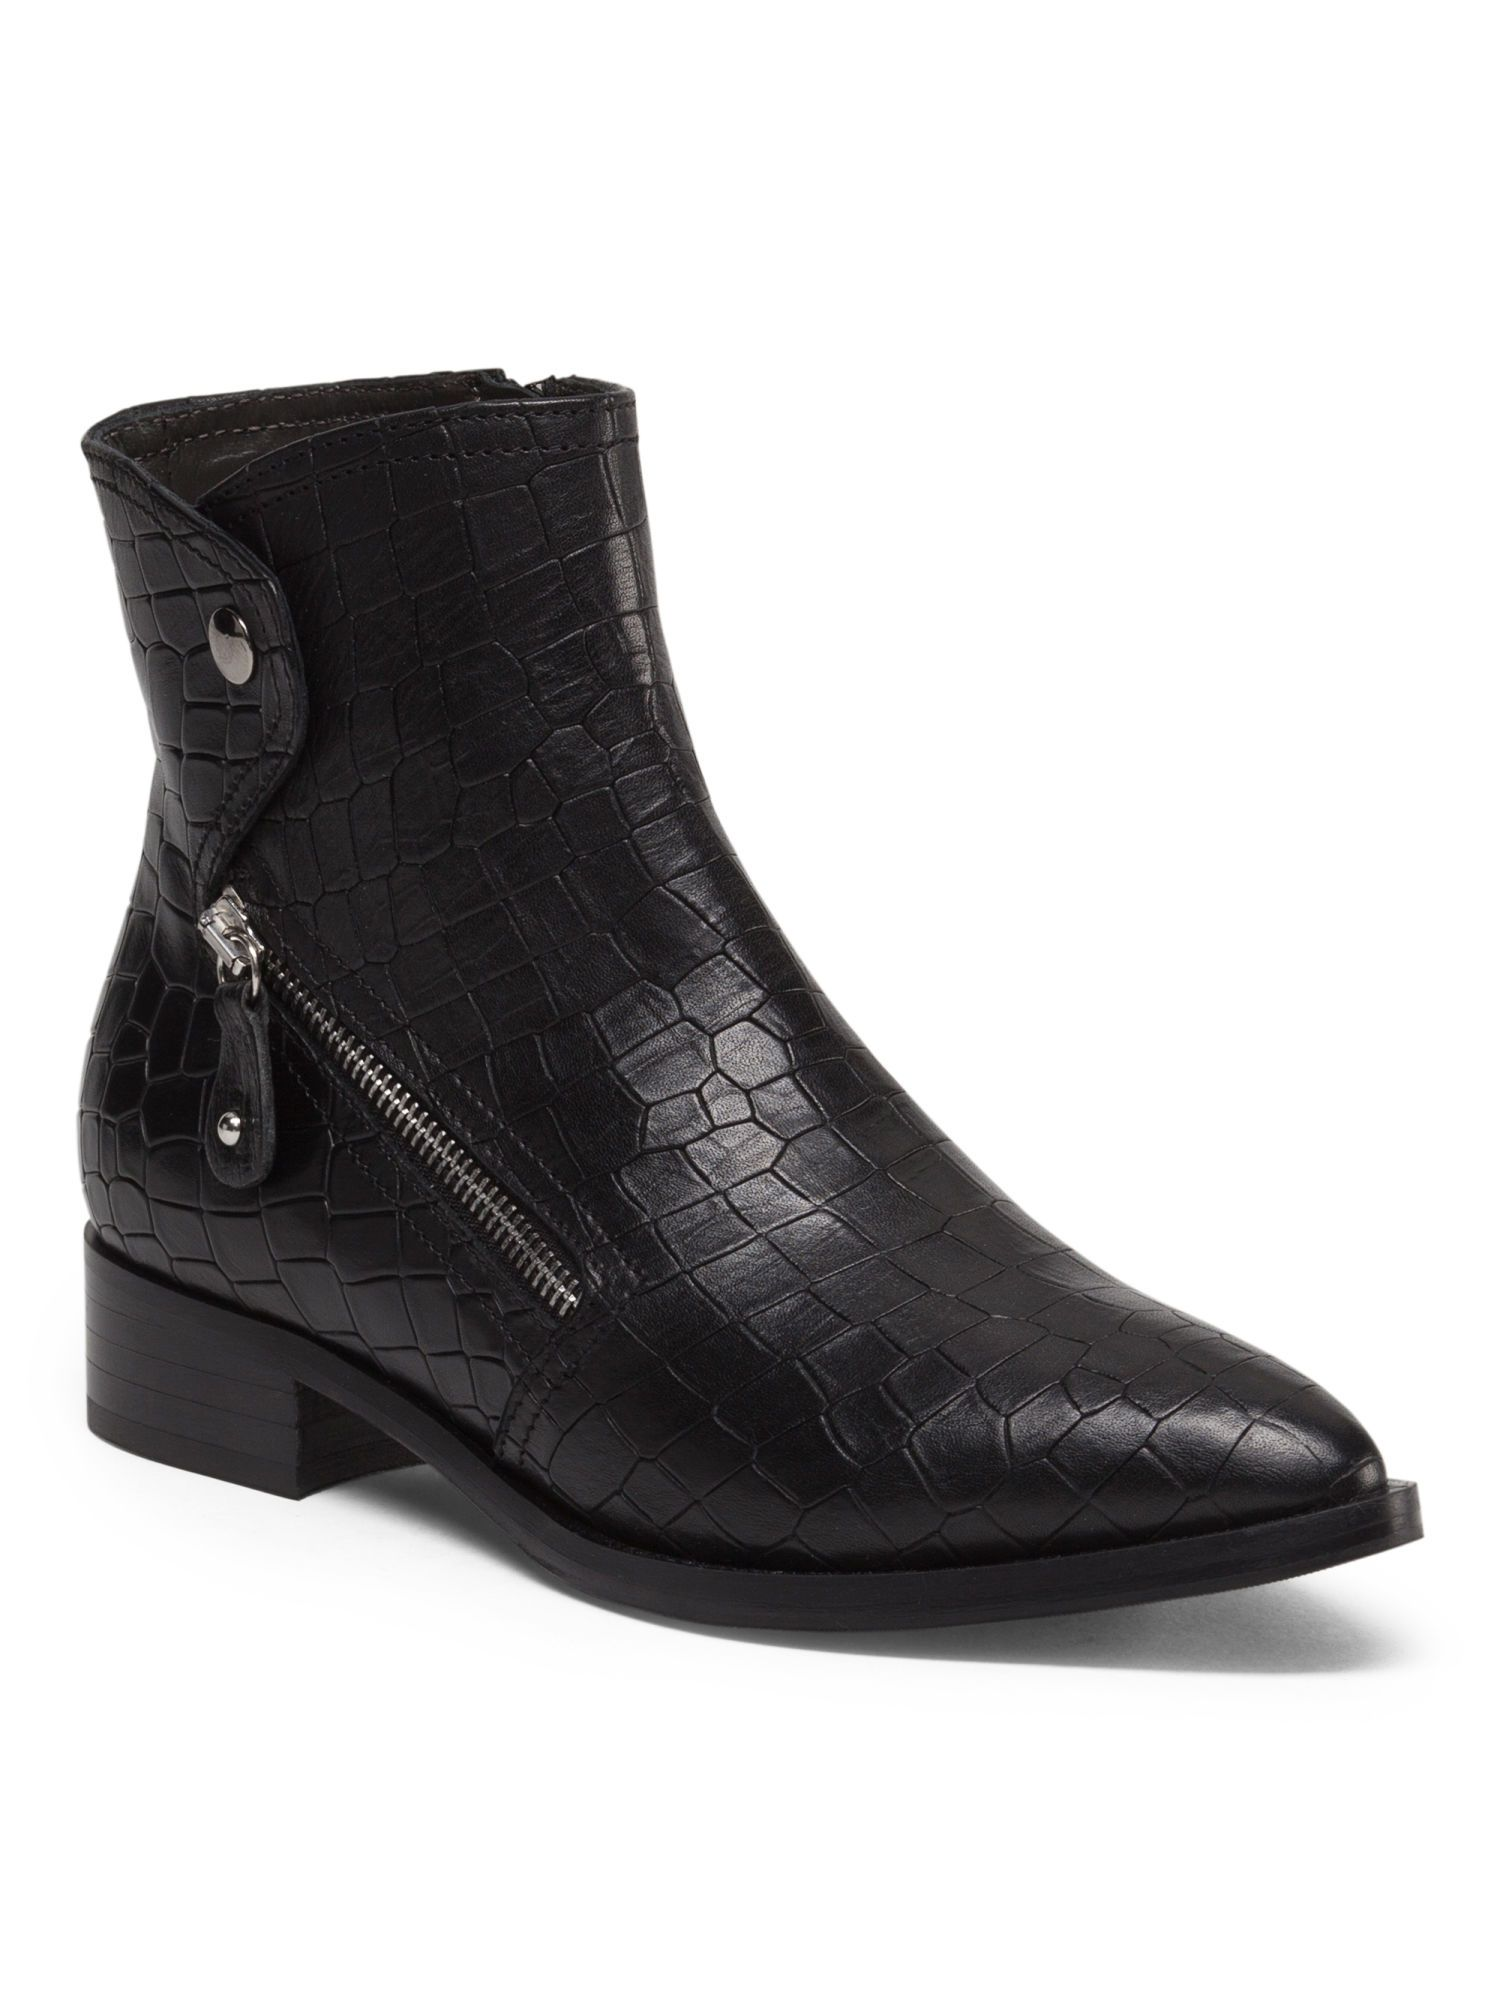 22f152259f23 NAPOLEONI Made In Italy Leather Snake Embossed Bootie  99.99   TJ ...